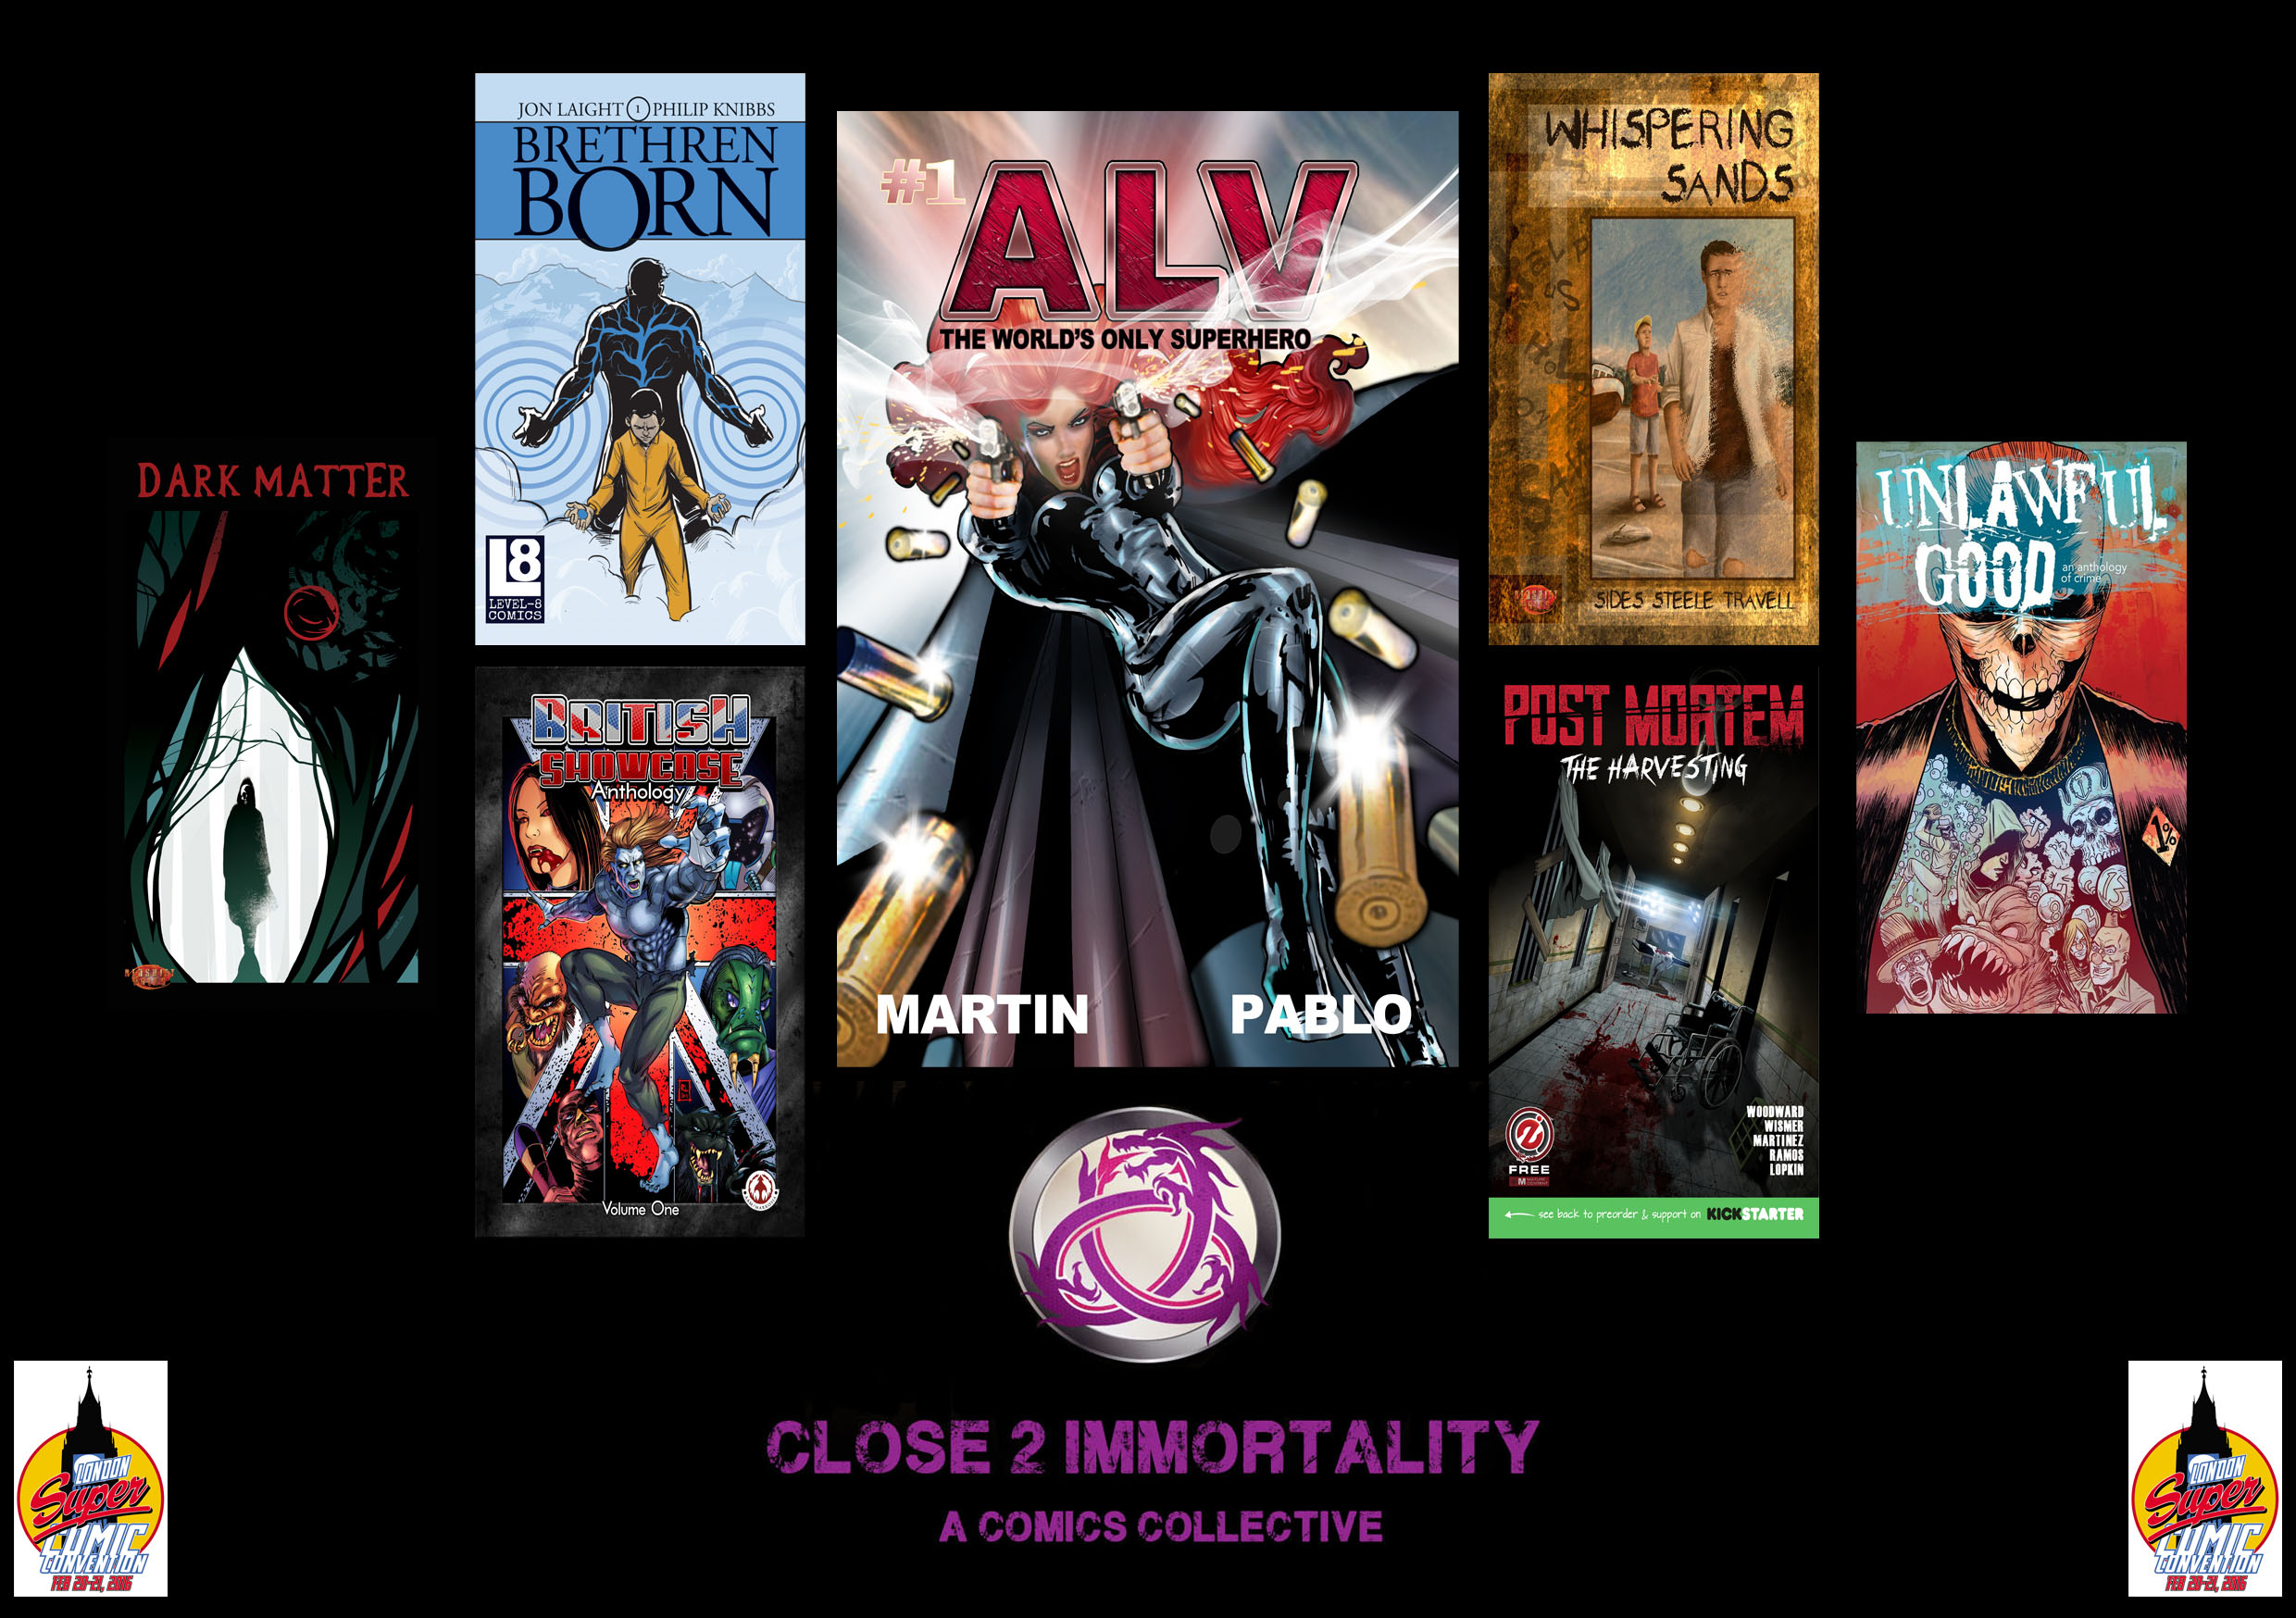 Close 2 Immortality Books Launch